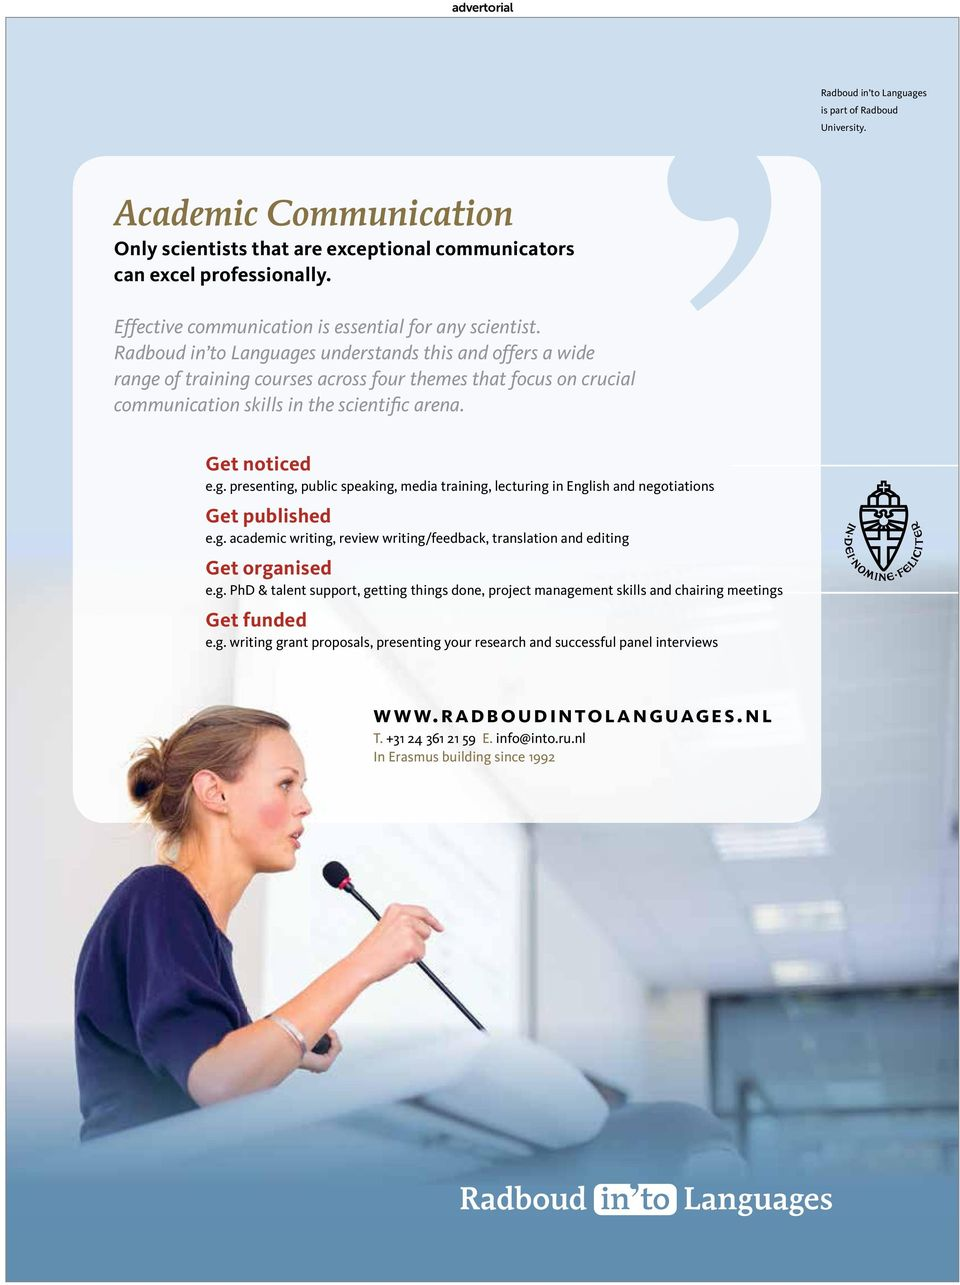 Radboud in to Languages understands this and offers a wide range of training courses across four themes that focus on crucial communication skills in the scientific arena. Get noticed e.g. presenting, public speaking, media training, lecturing in English and negotiations Get published e.